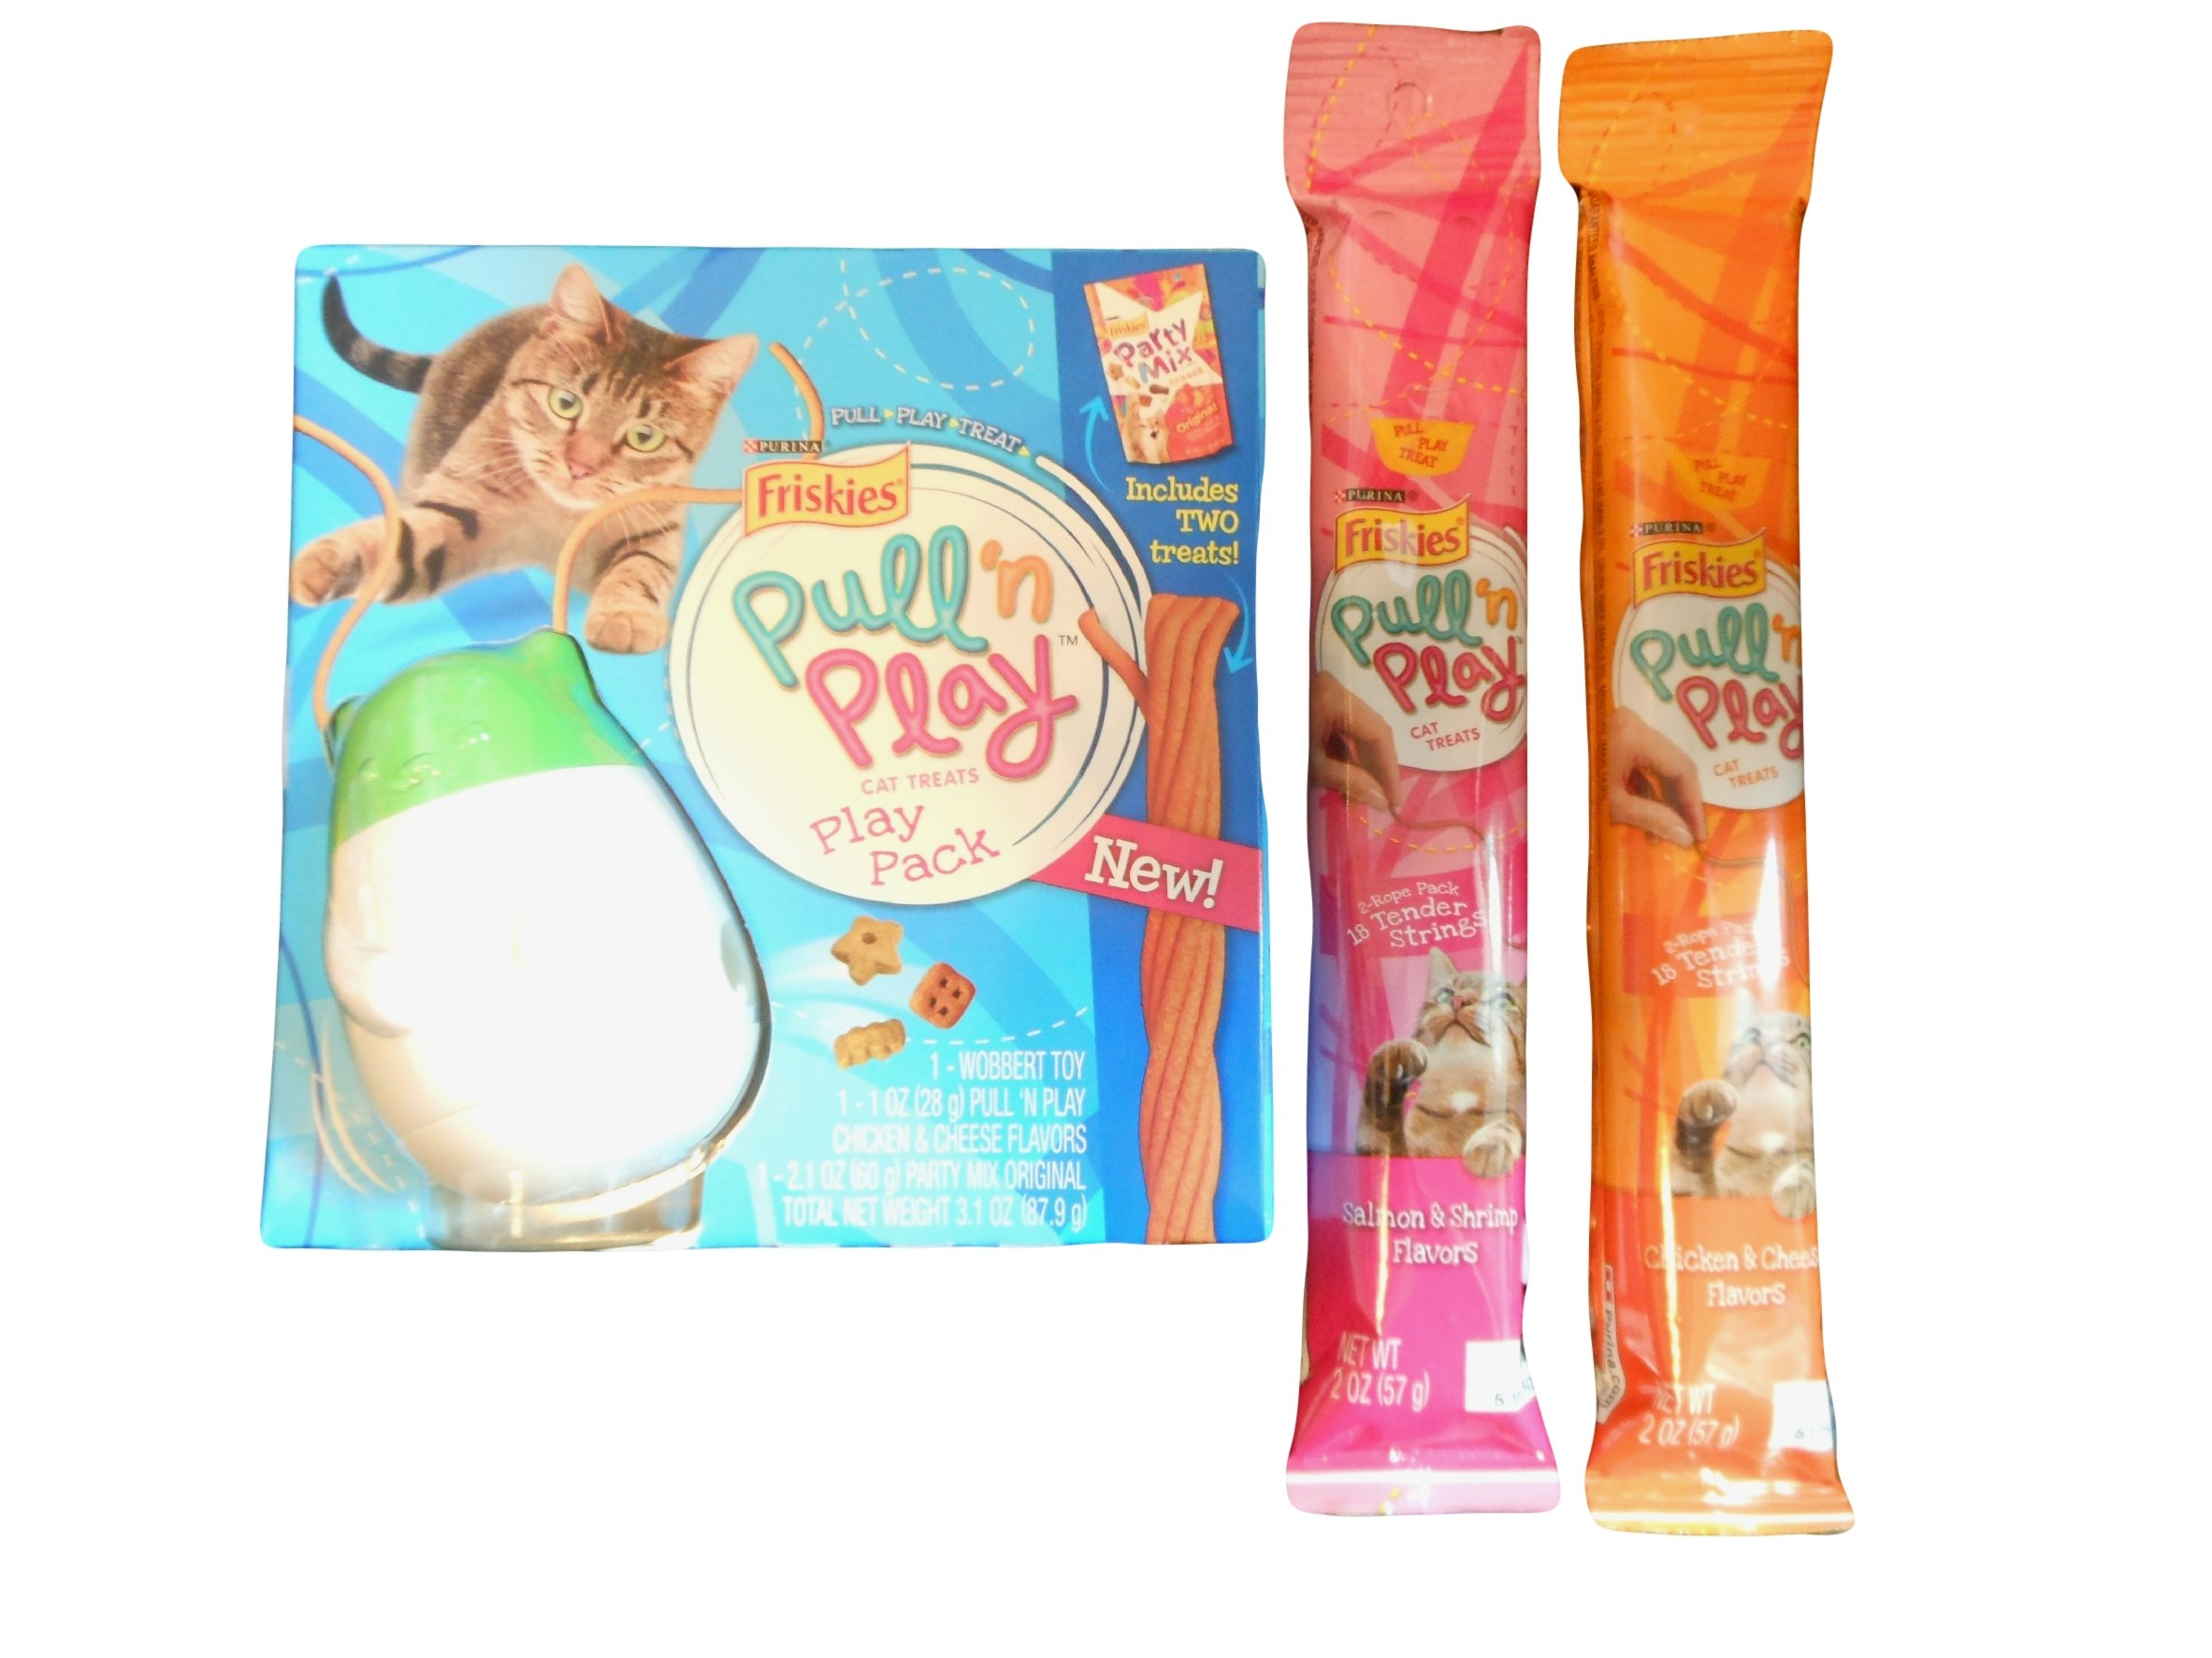 Pull N Play Cat Treat Bundle Comes with 3 Pullnplay string treats and 1 Friskie Party Mix